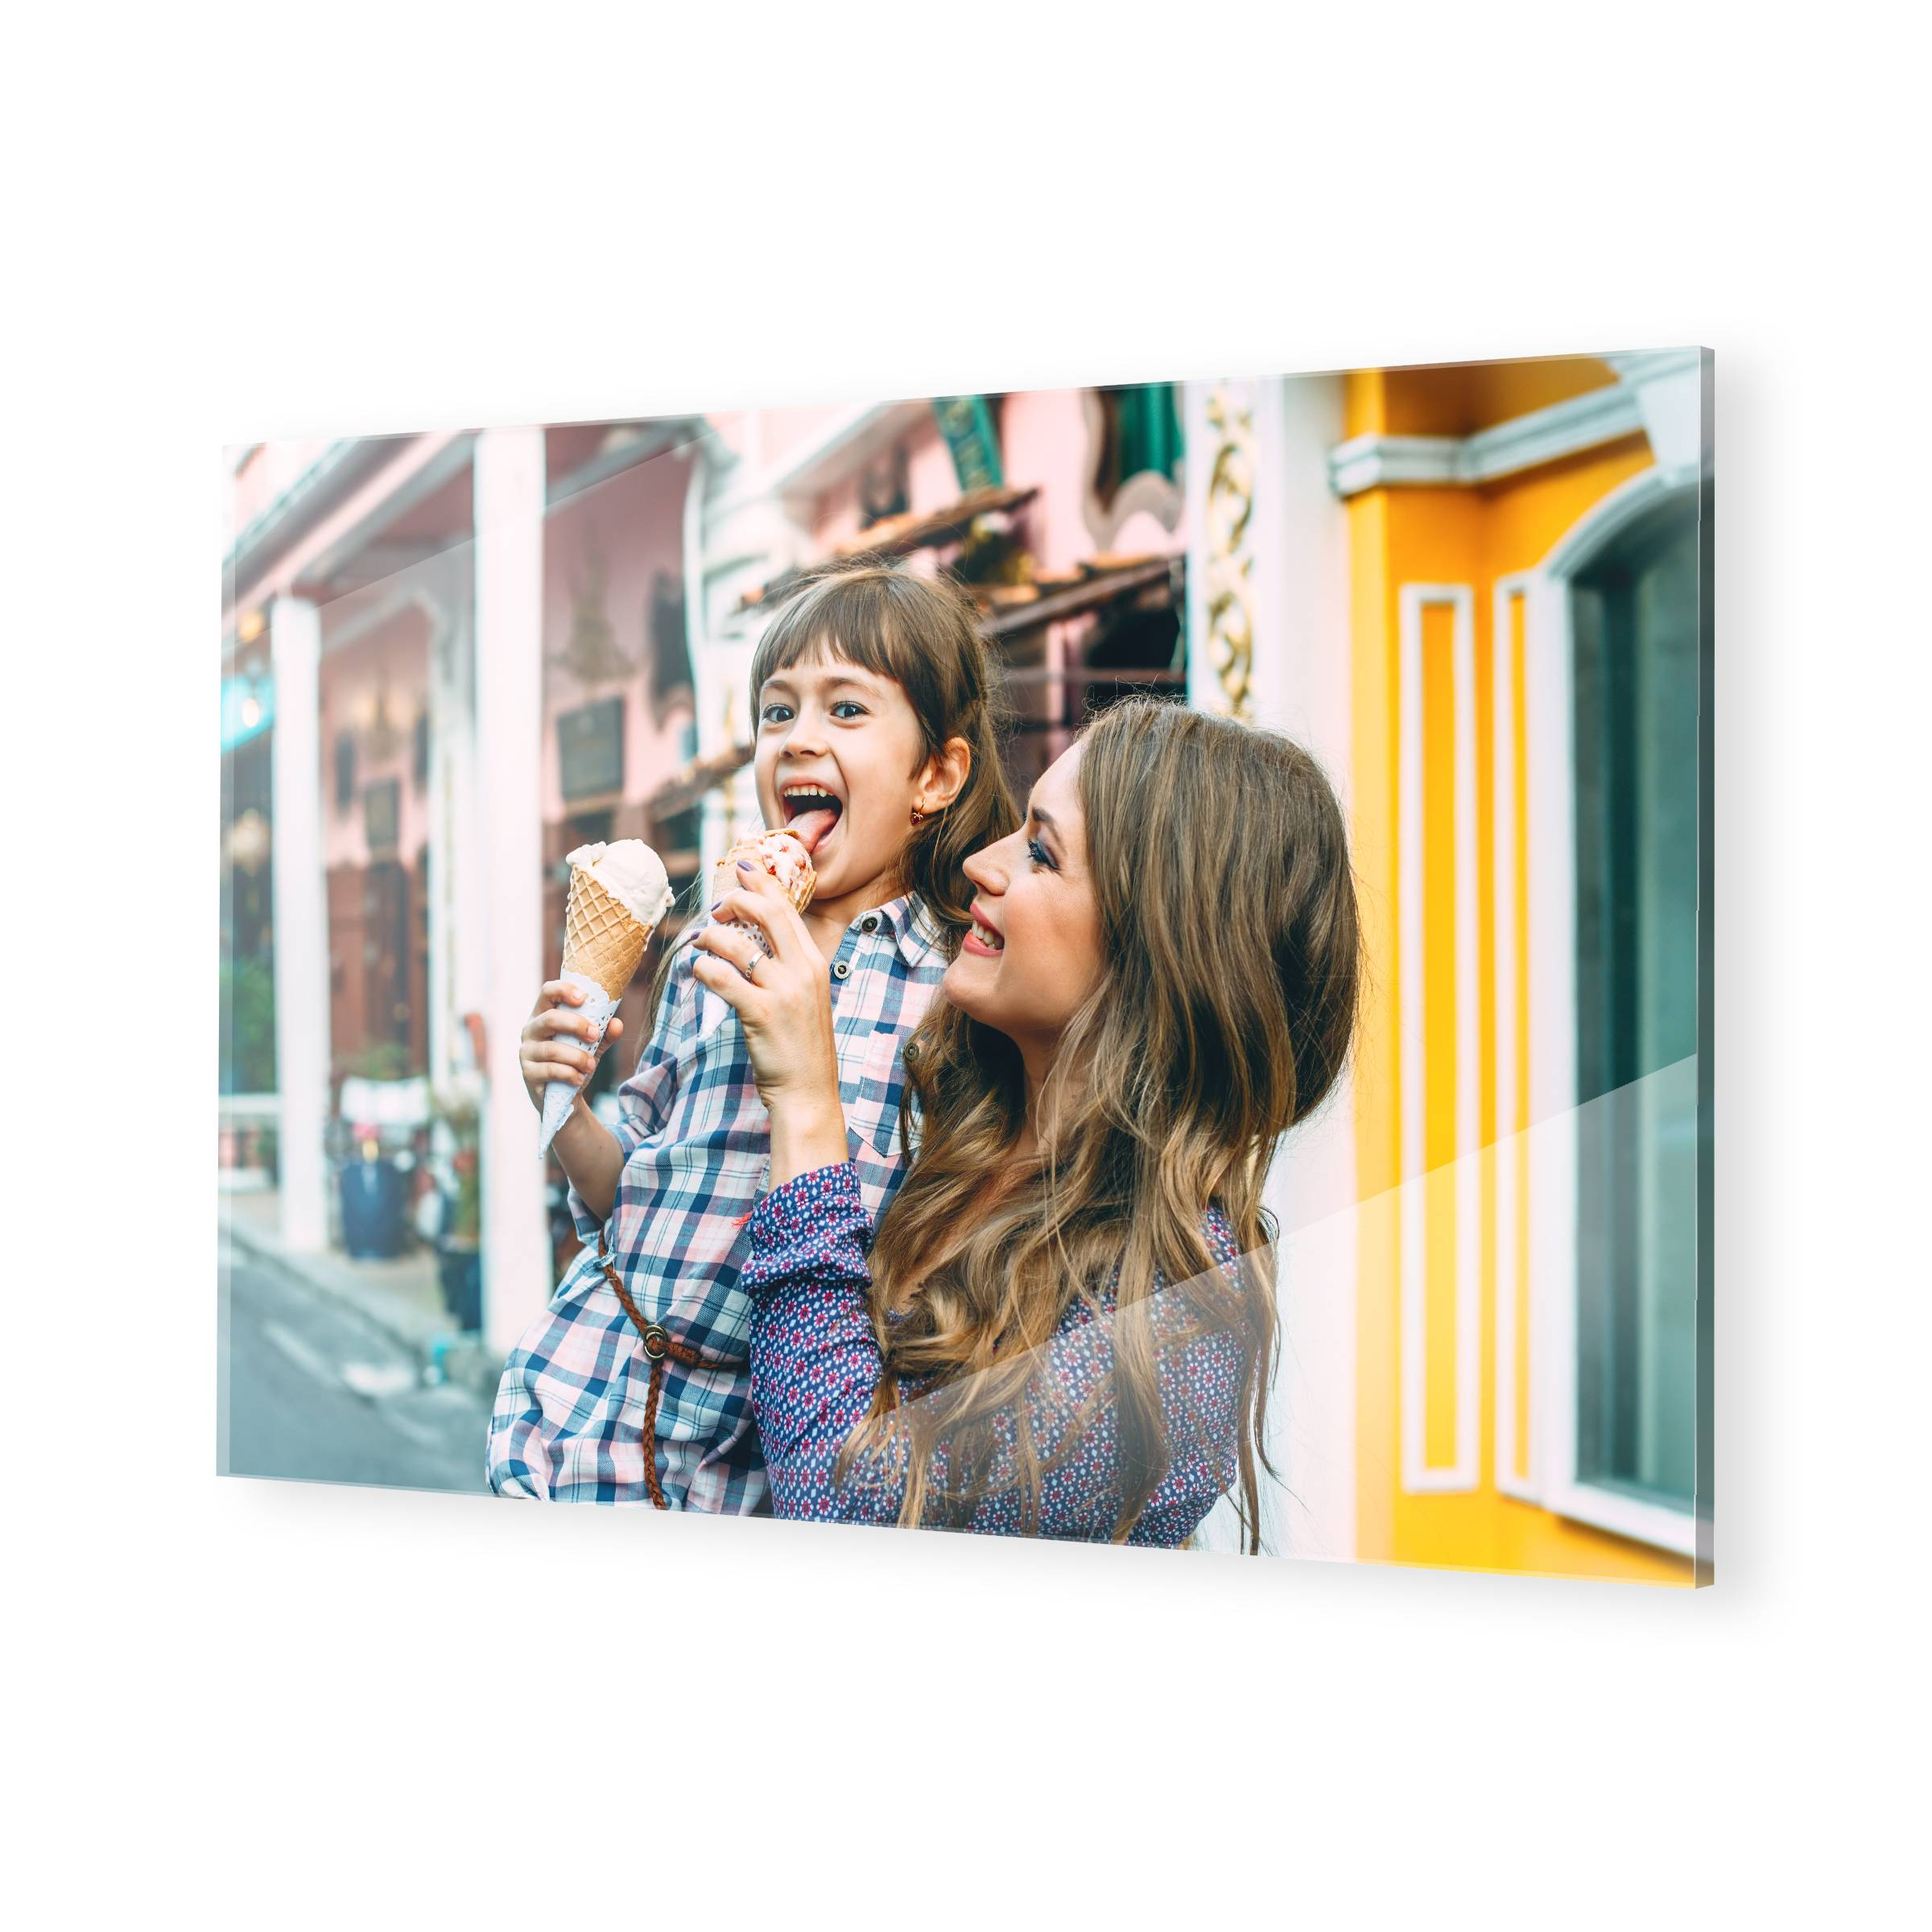 Resolution photo gallerybond